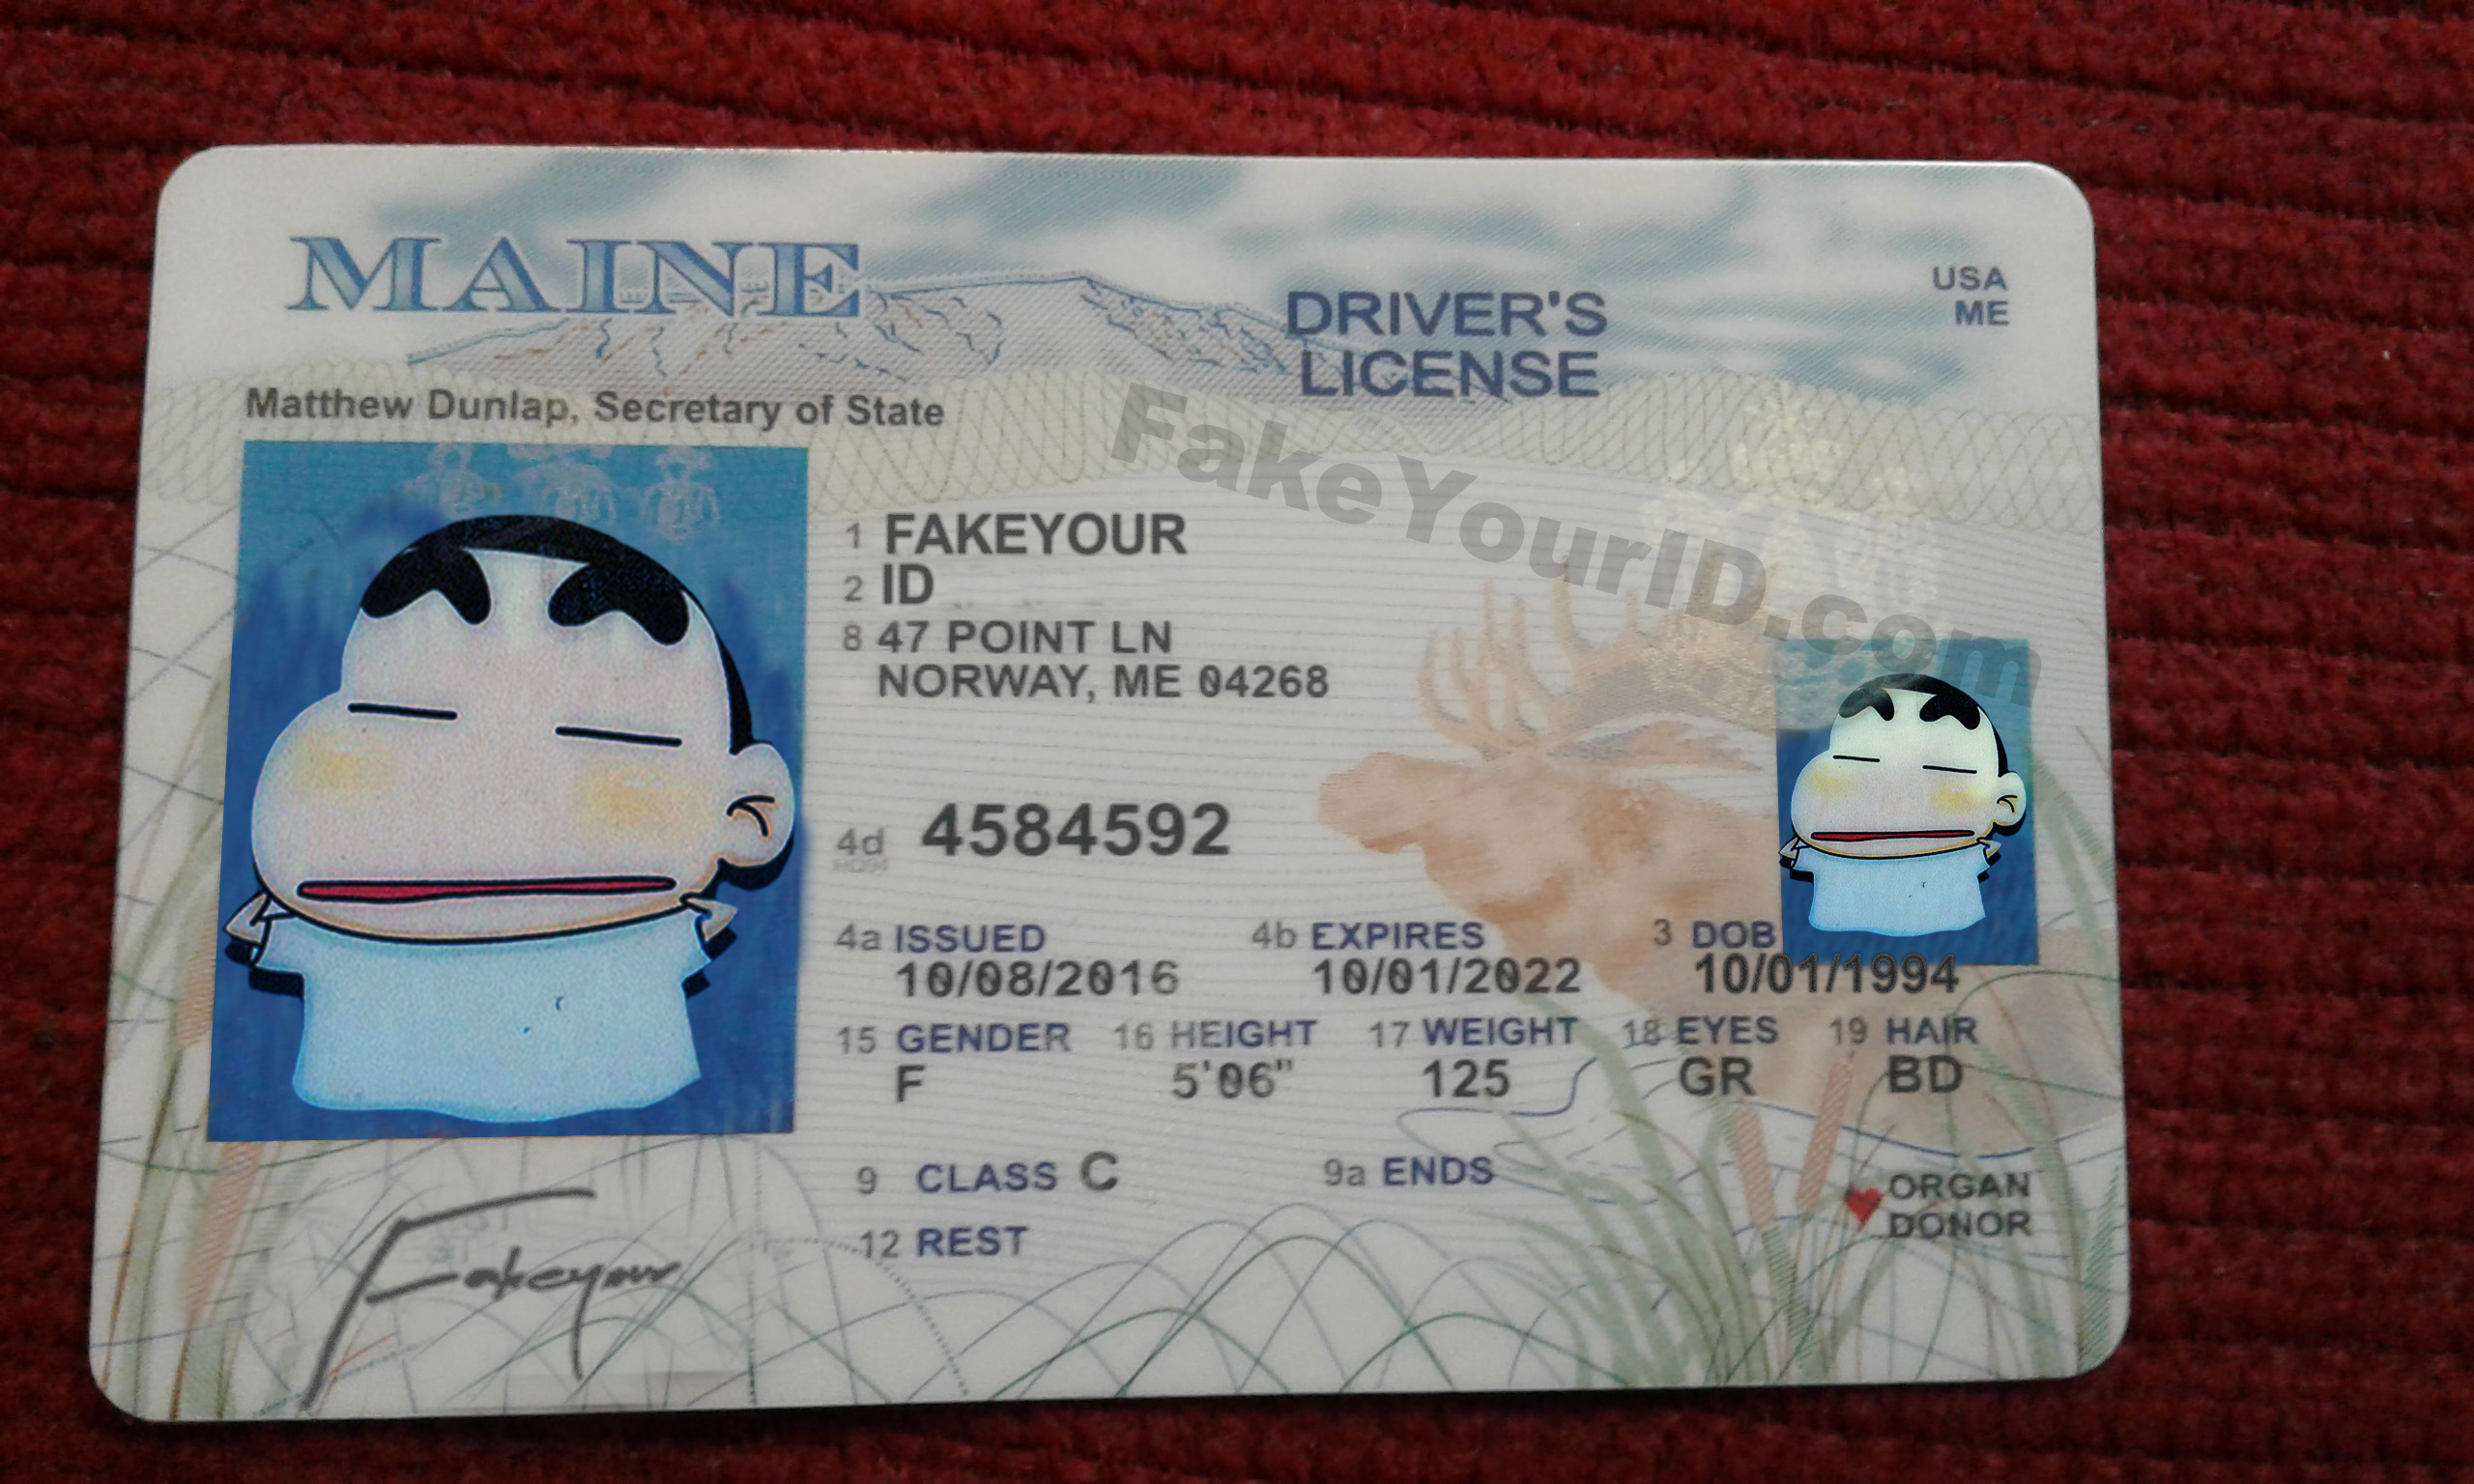 Id Premium Ids We Buy - Fake Maine Scannable Make